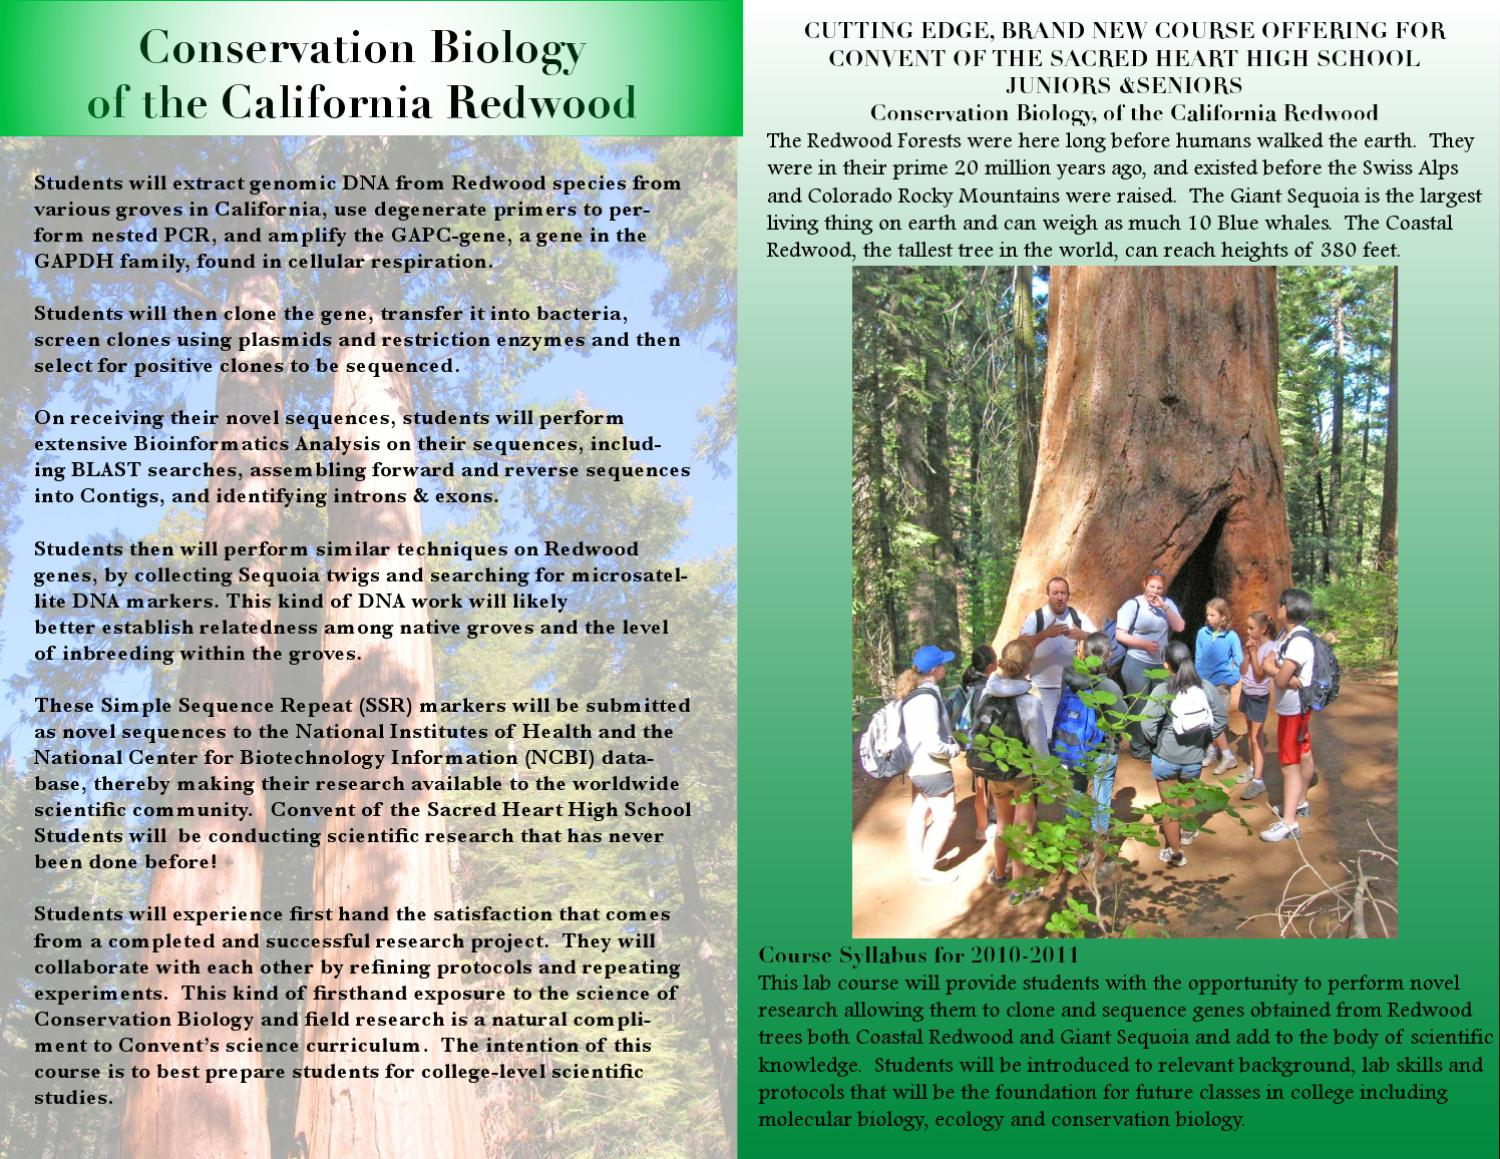 Conservation Biology of the California Redwood by Caitlin